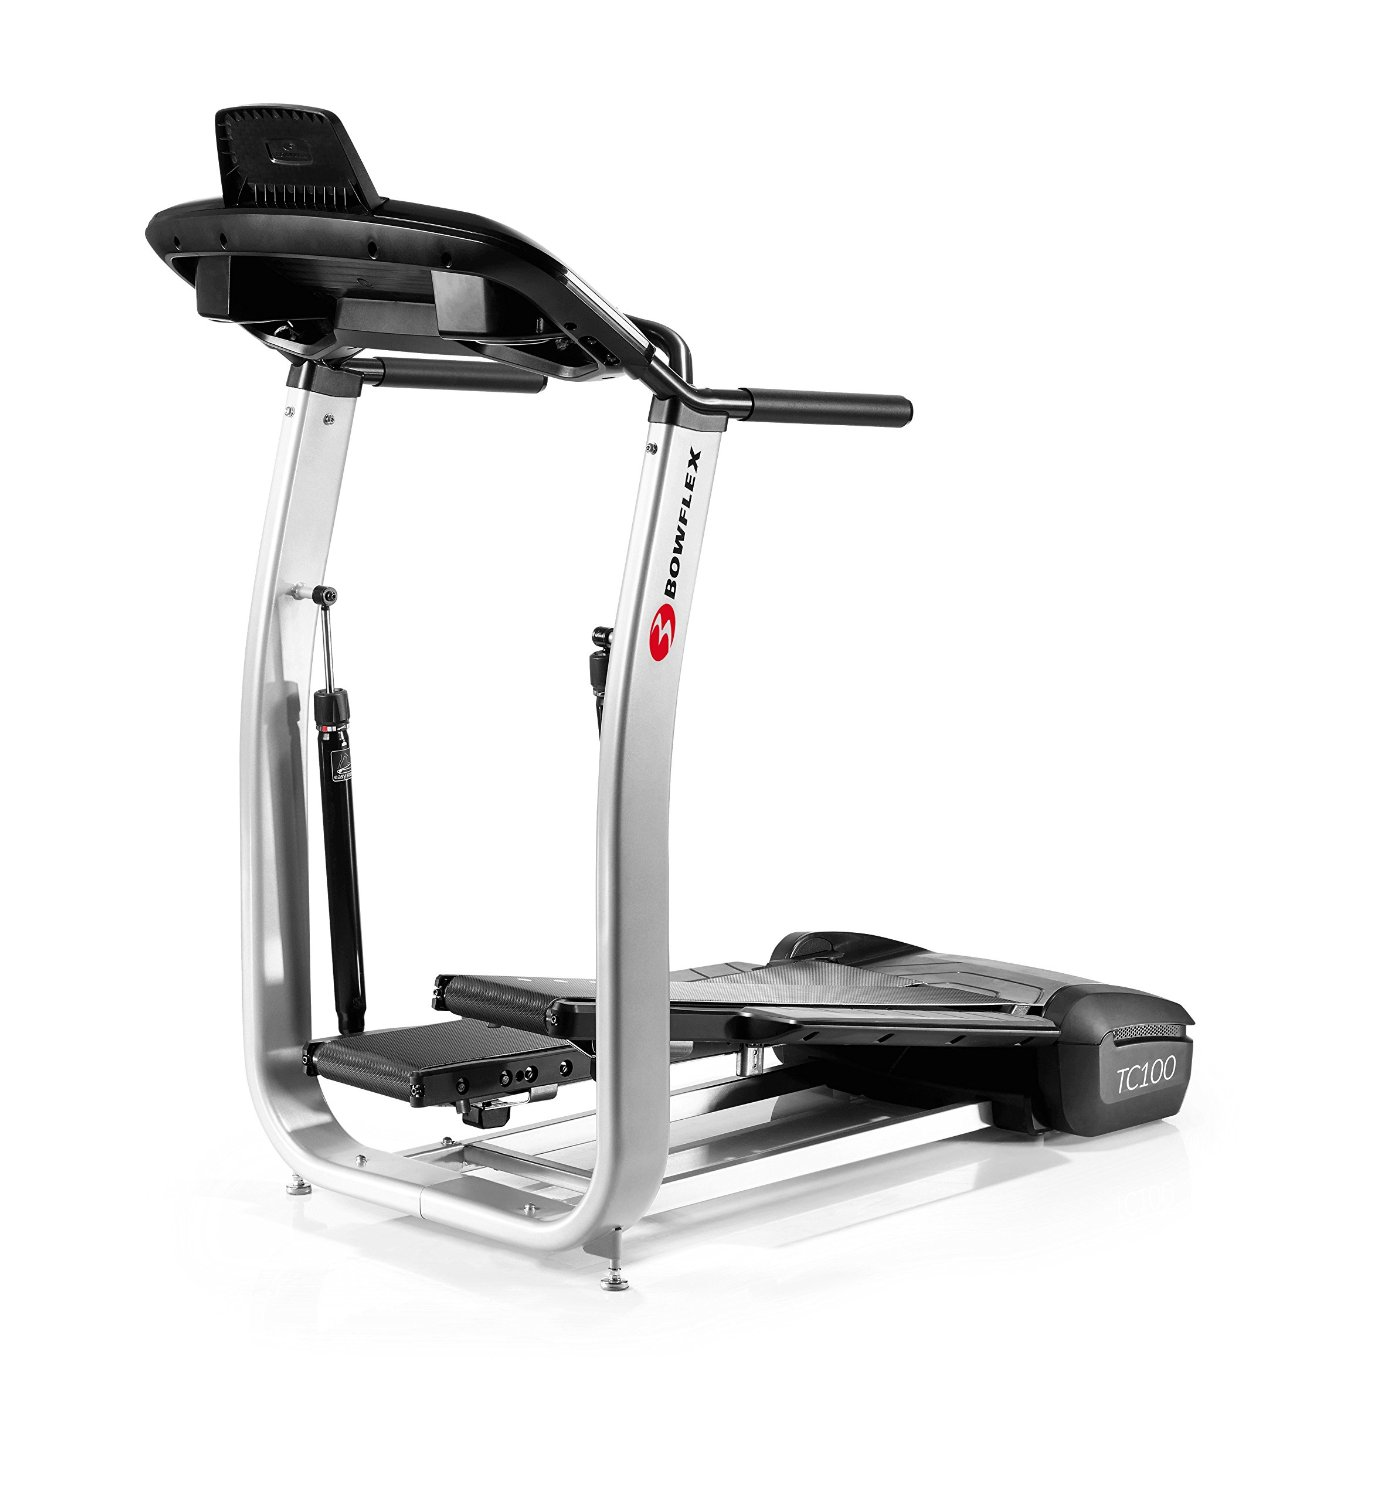 Top 5 Bowflex Treadclimber Reviews — The Best Among the Best (2020)